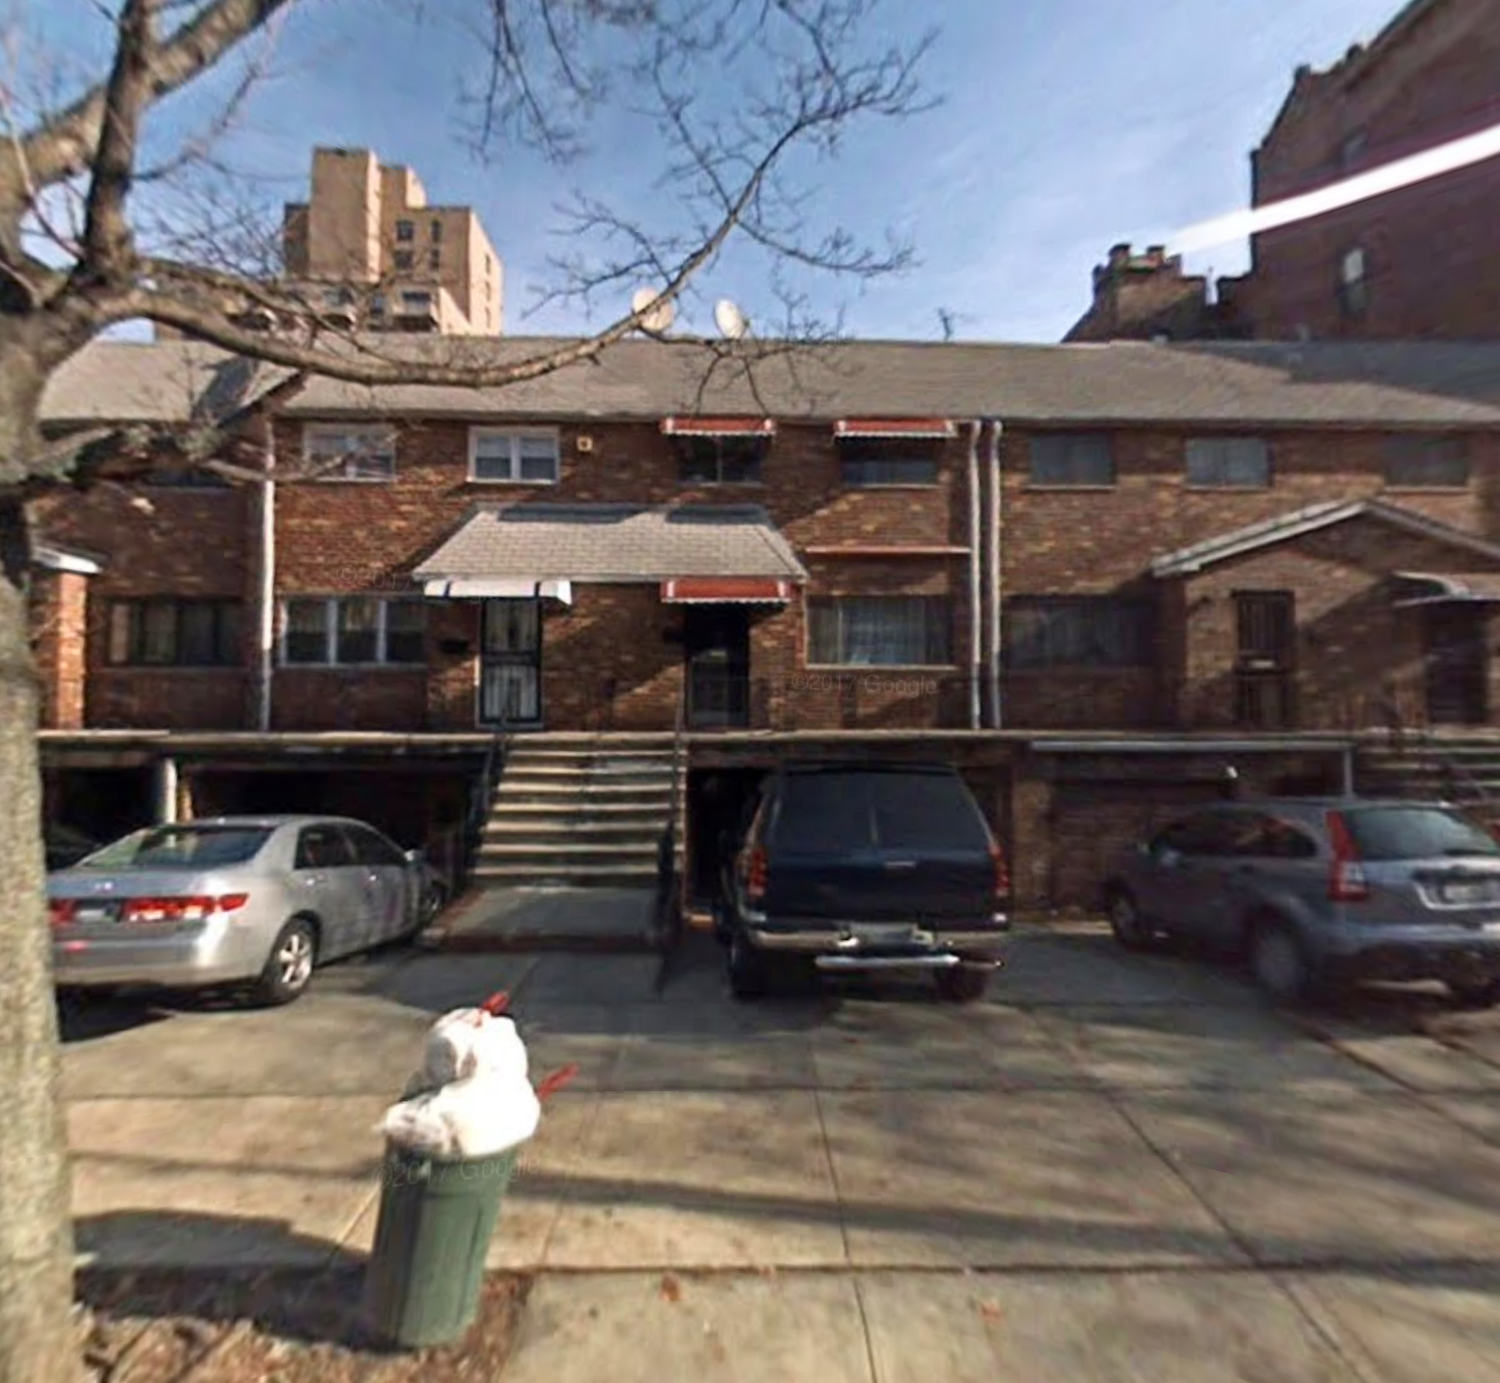 83-05 116th Street, via Google Maps